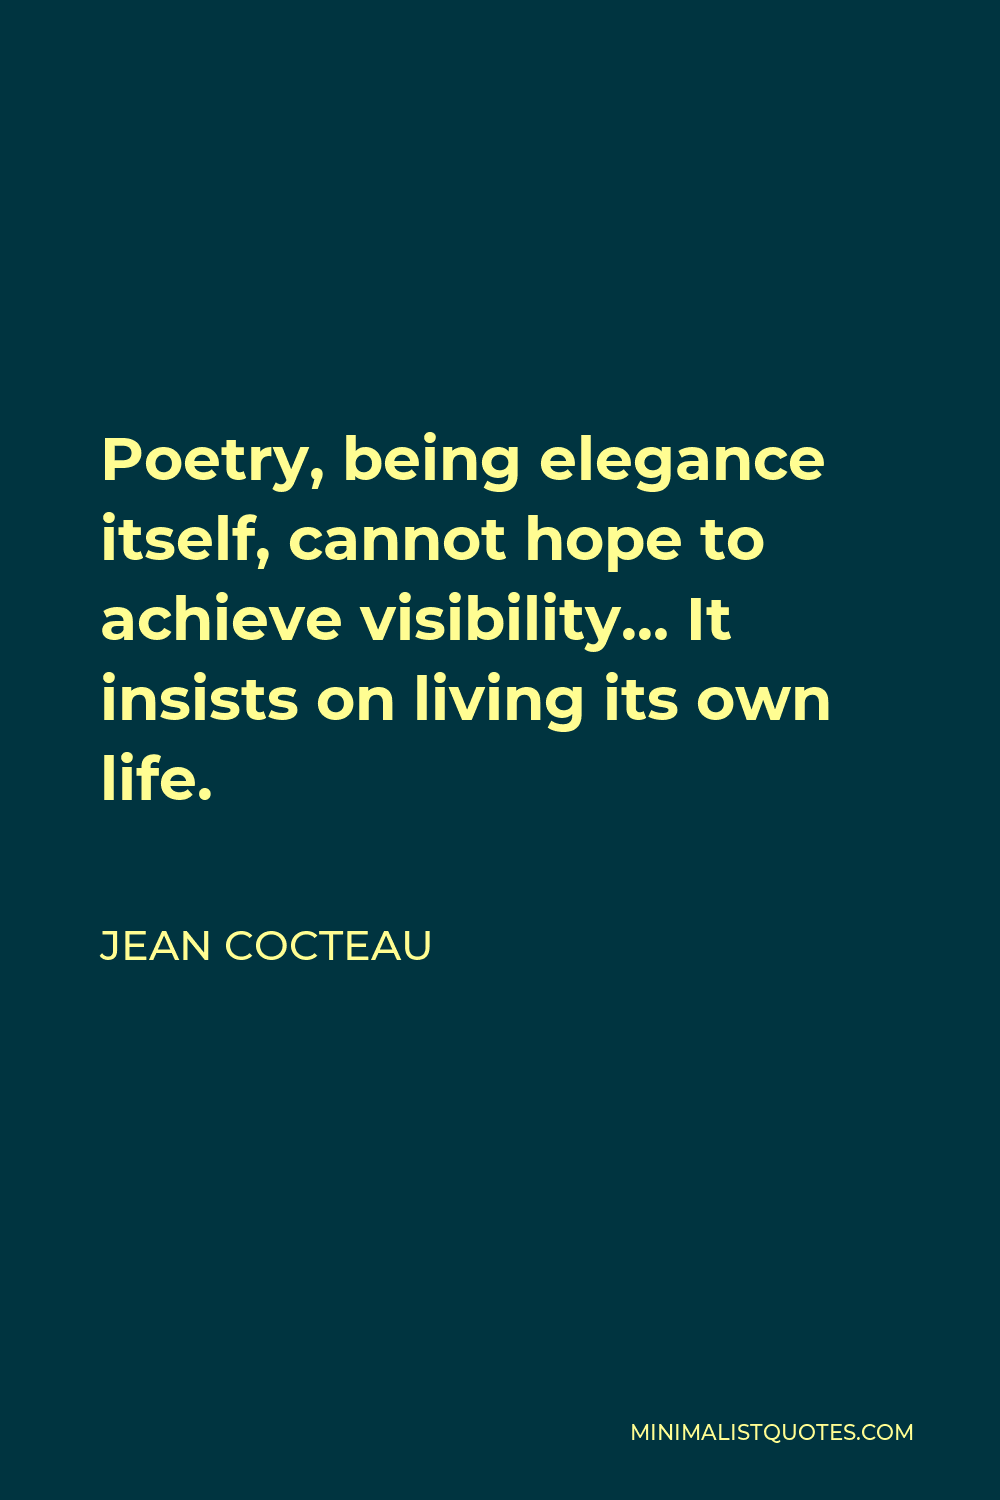 Jean Cocteau Quote - Poetry, being elegance itself, cannot hope to achieve visibility… It insists on living its own life.